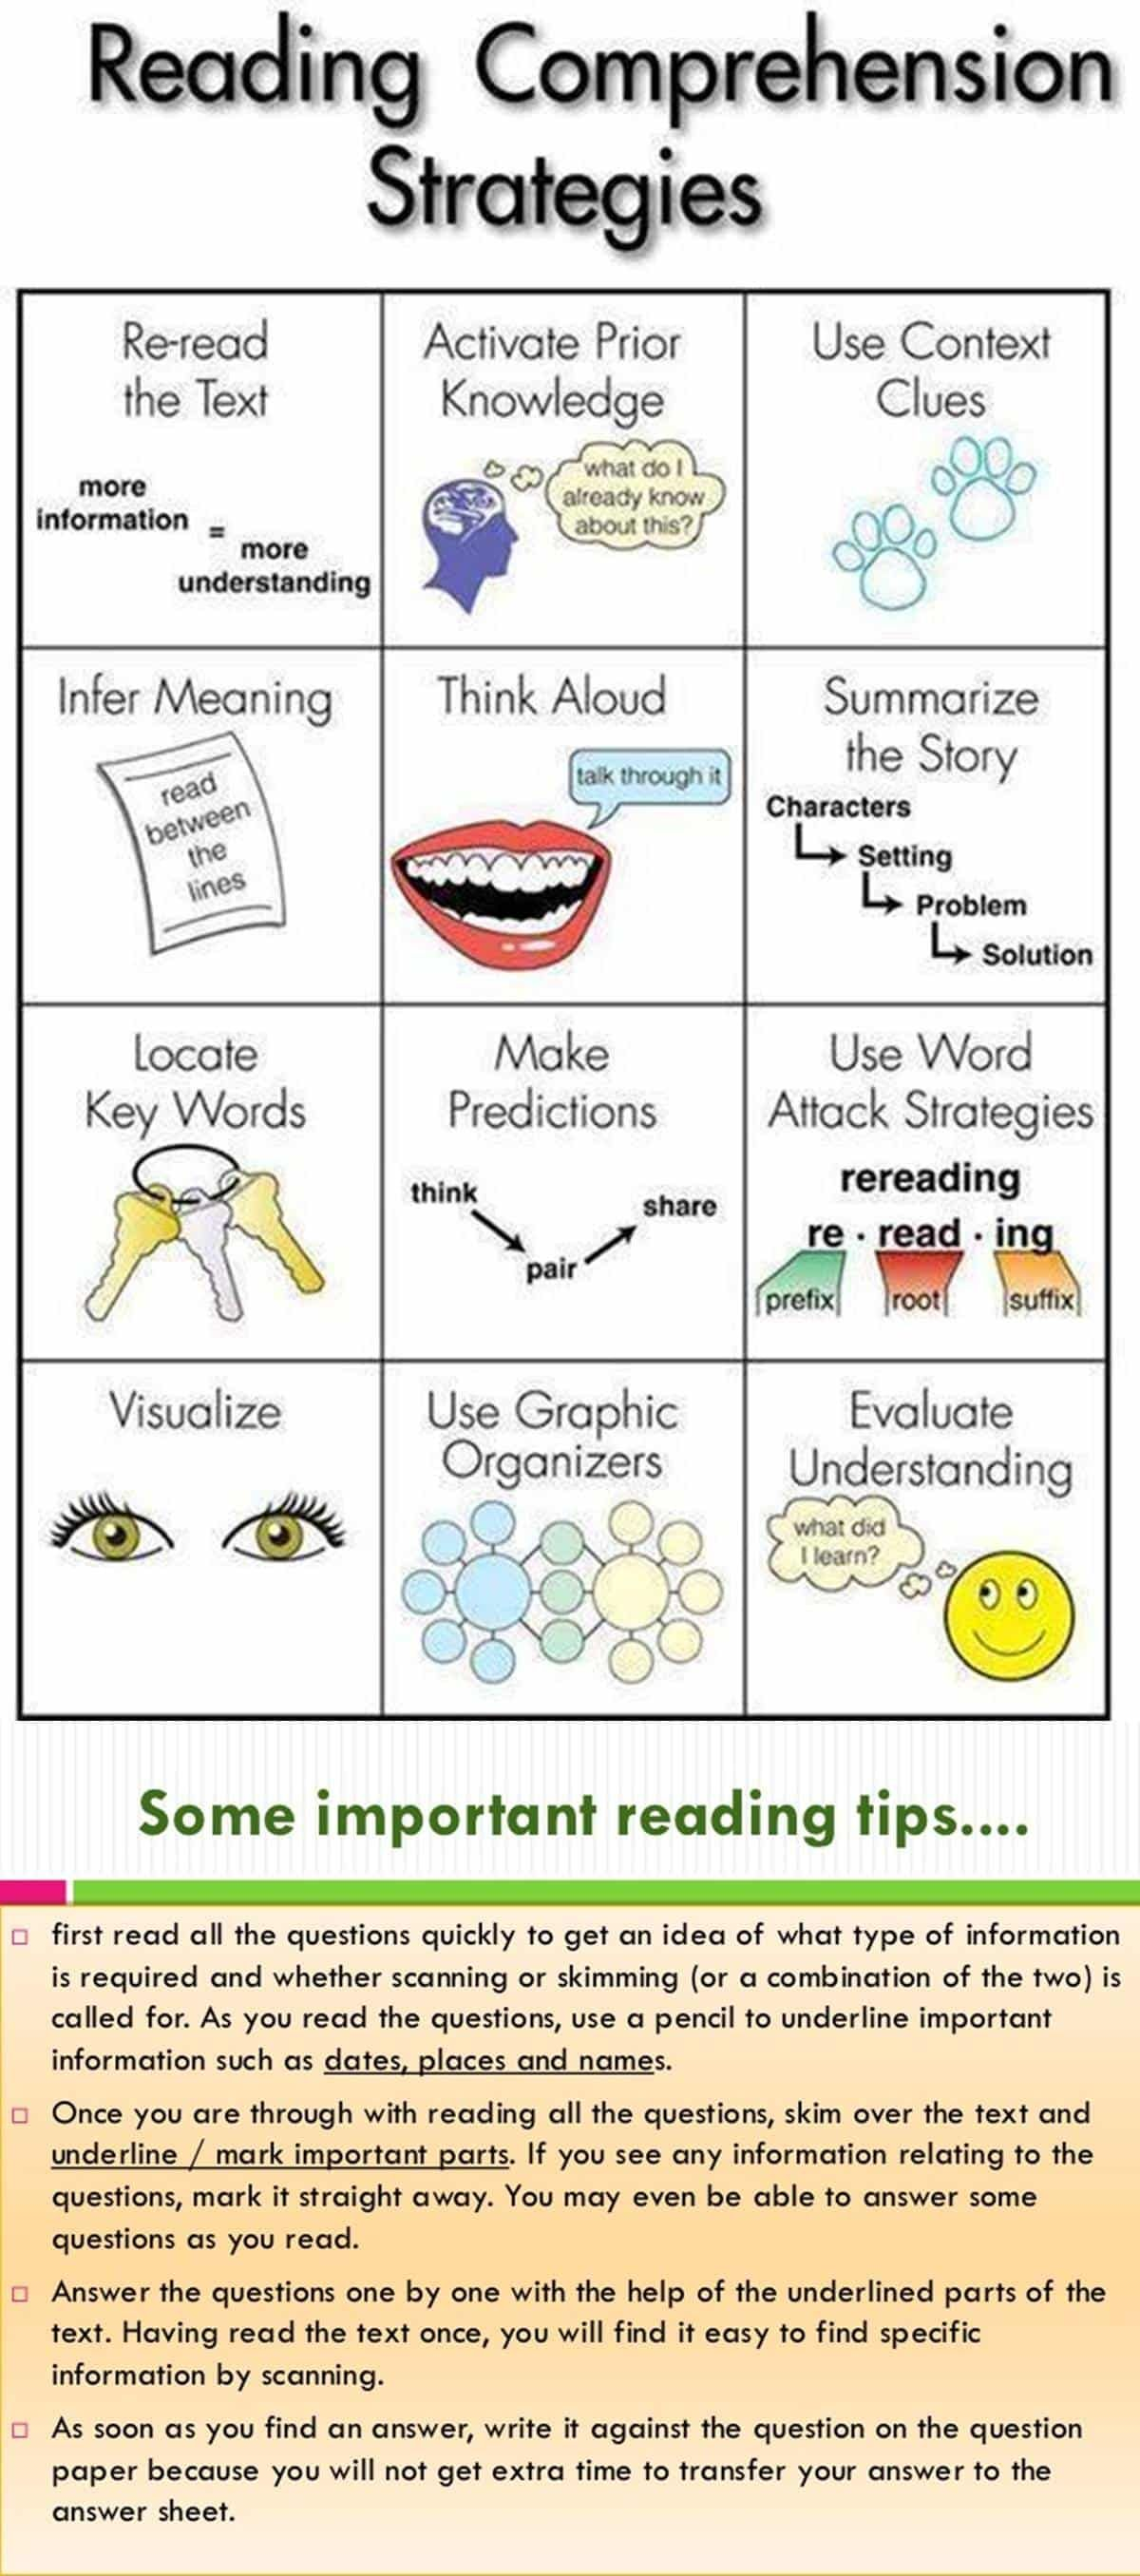 Reading Comprehension Strategies For English Language Learners Eslbuzz Learning English Reading Comprehension Strategies Teaching Reading Comprehension Reading Comprehension Reading strategies for esl students